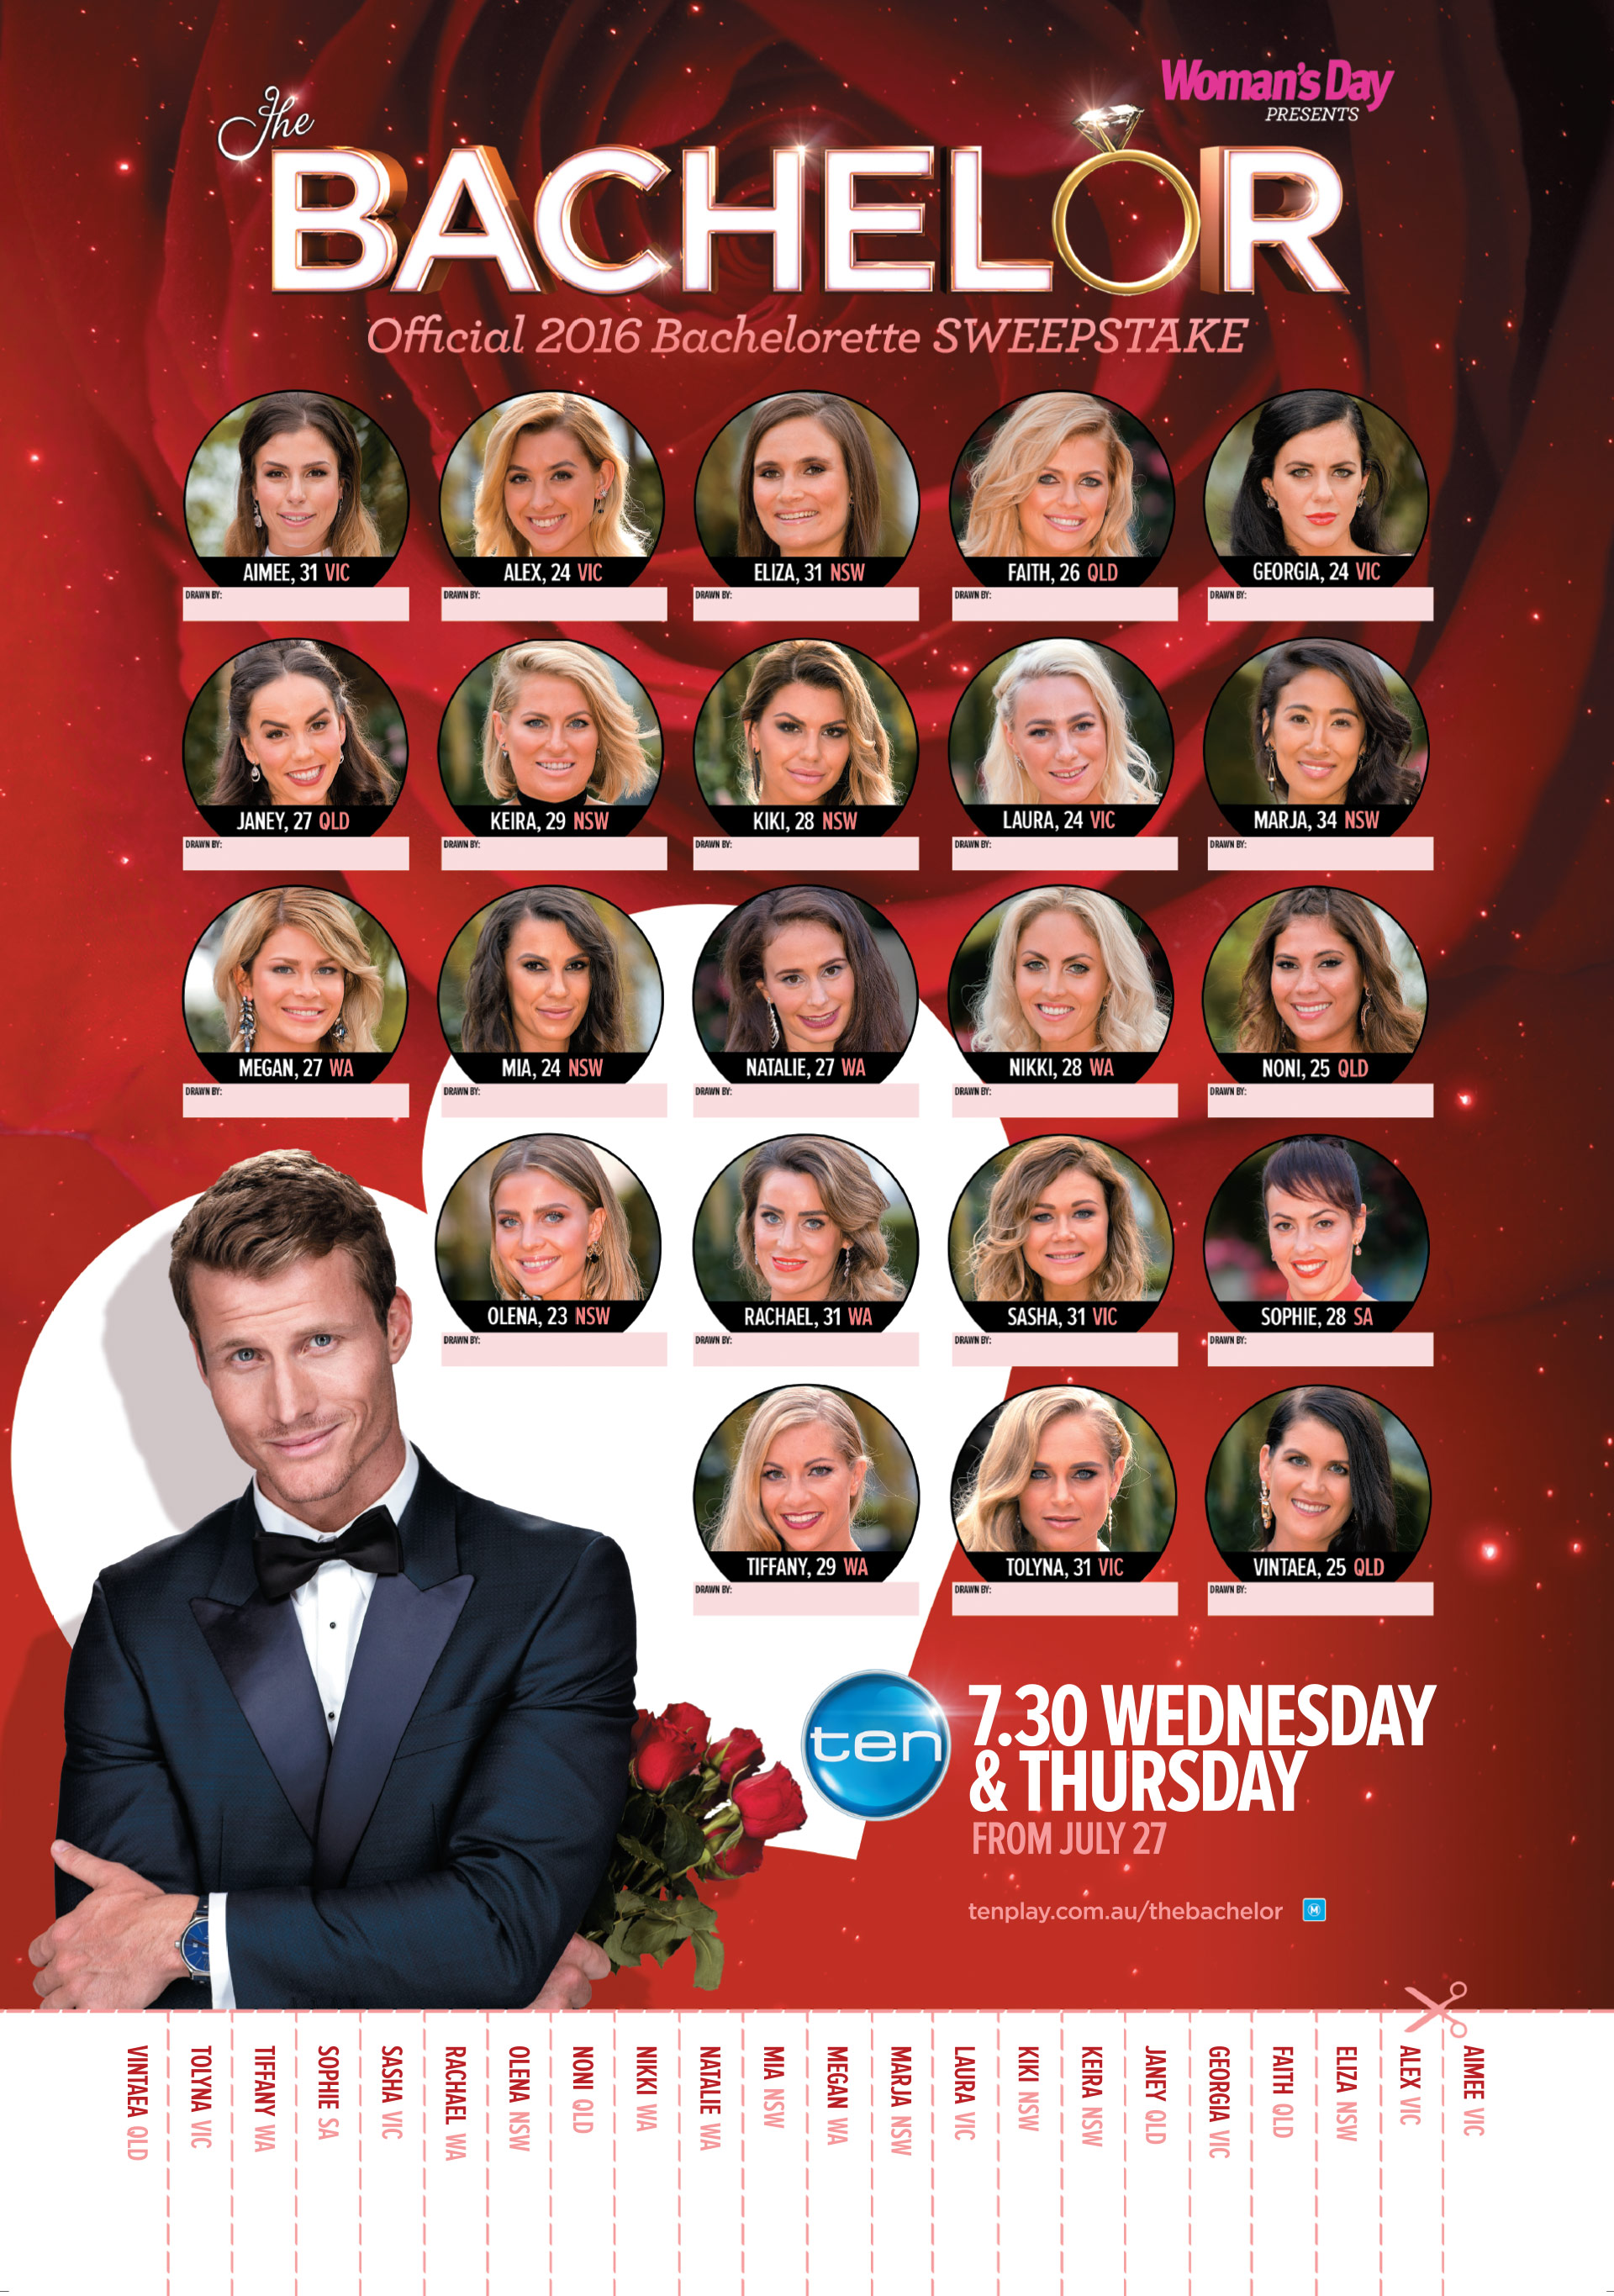 the 2016 bachelor sweepstakes